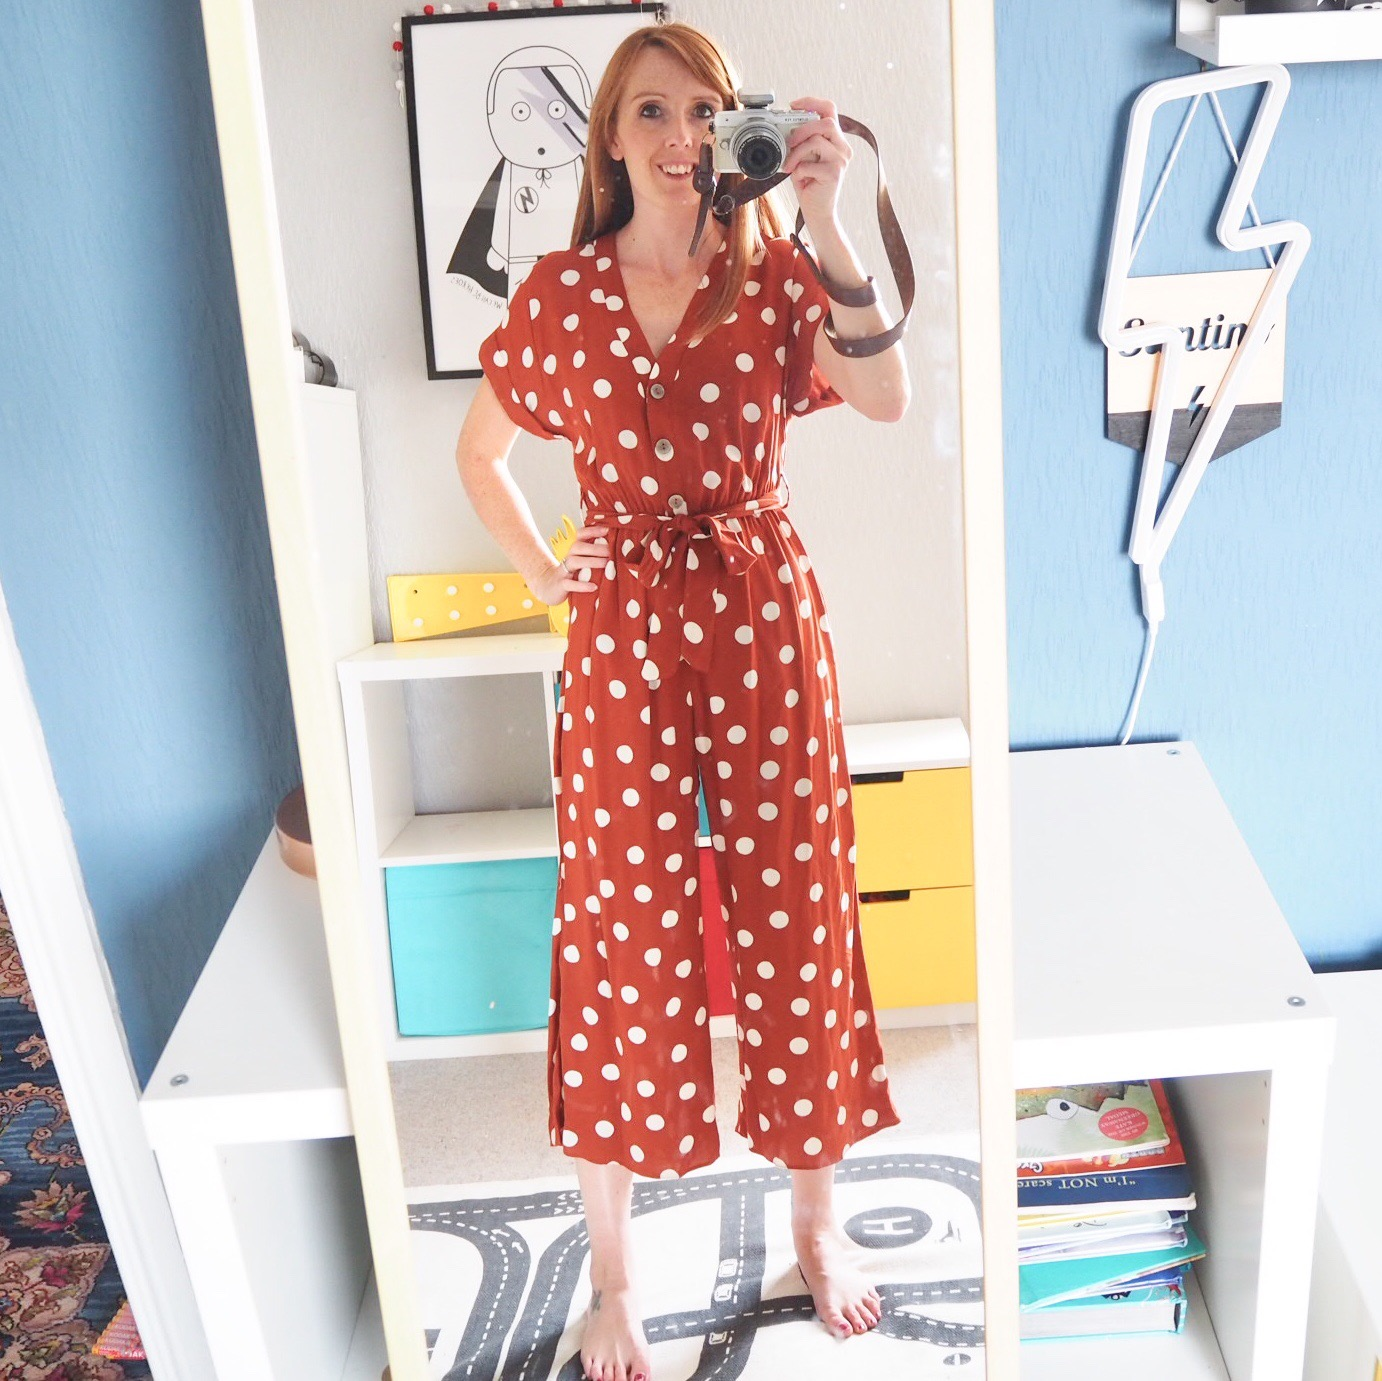 What Mama Bought: A load of New Look polka dot prints